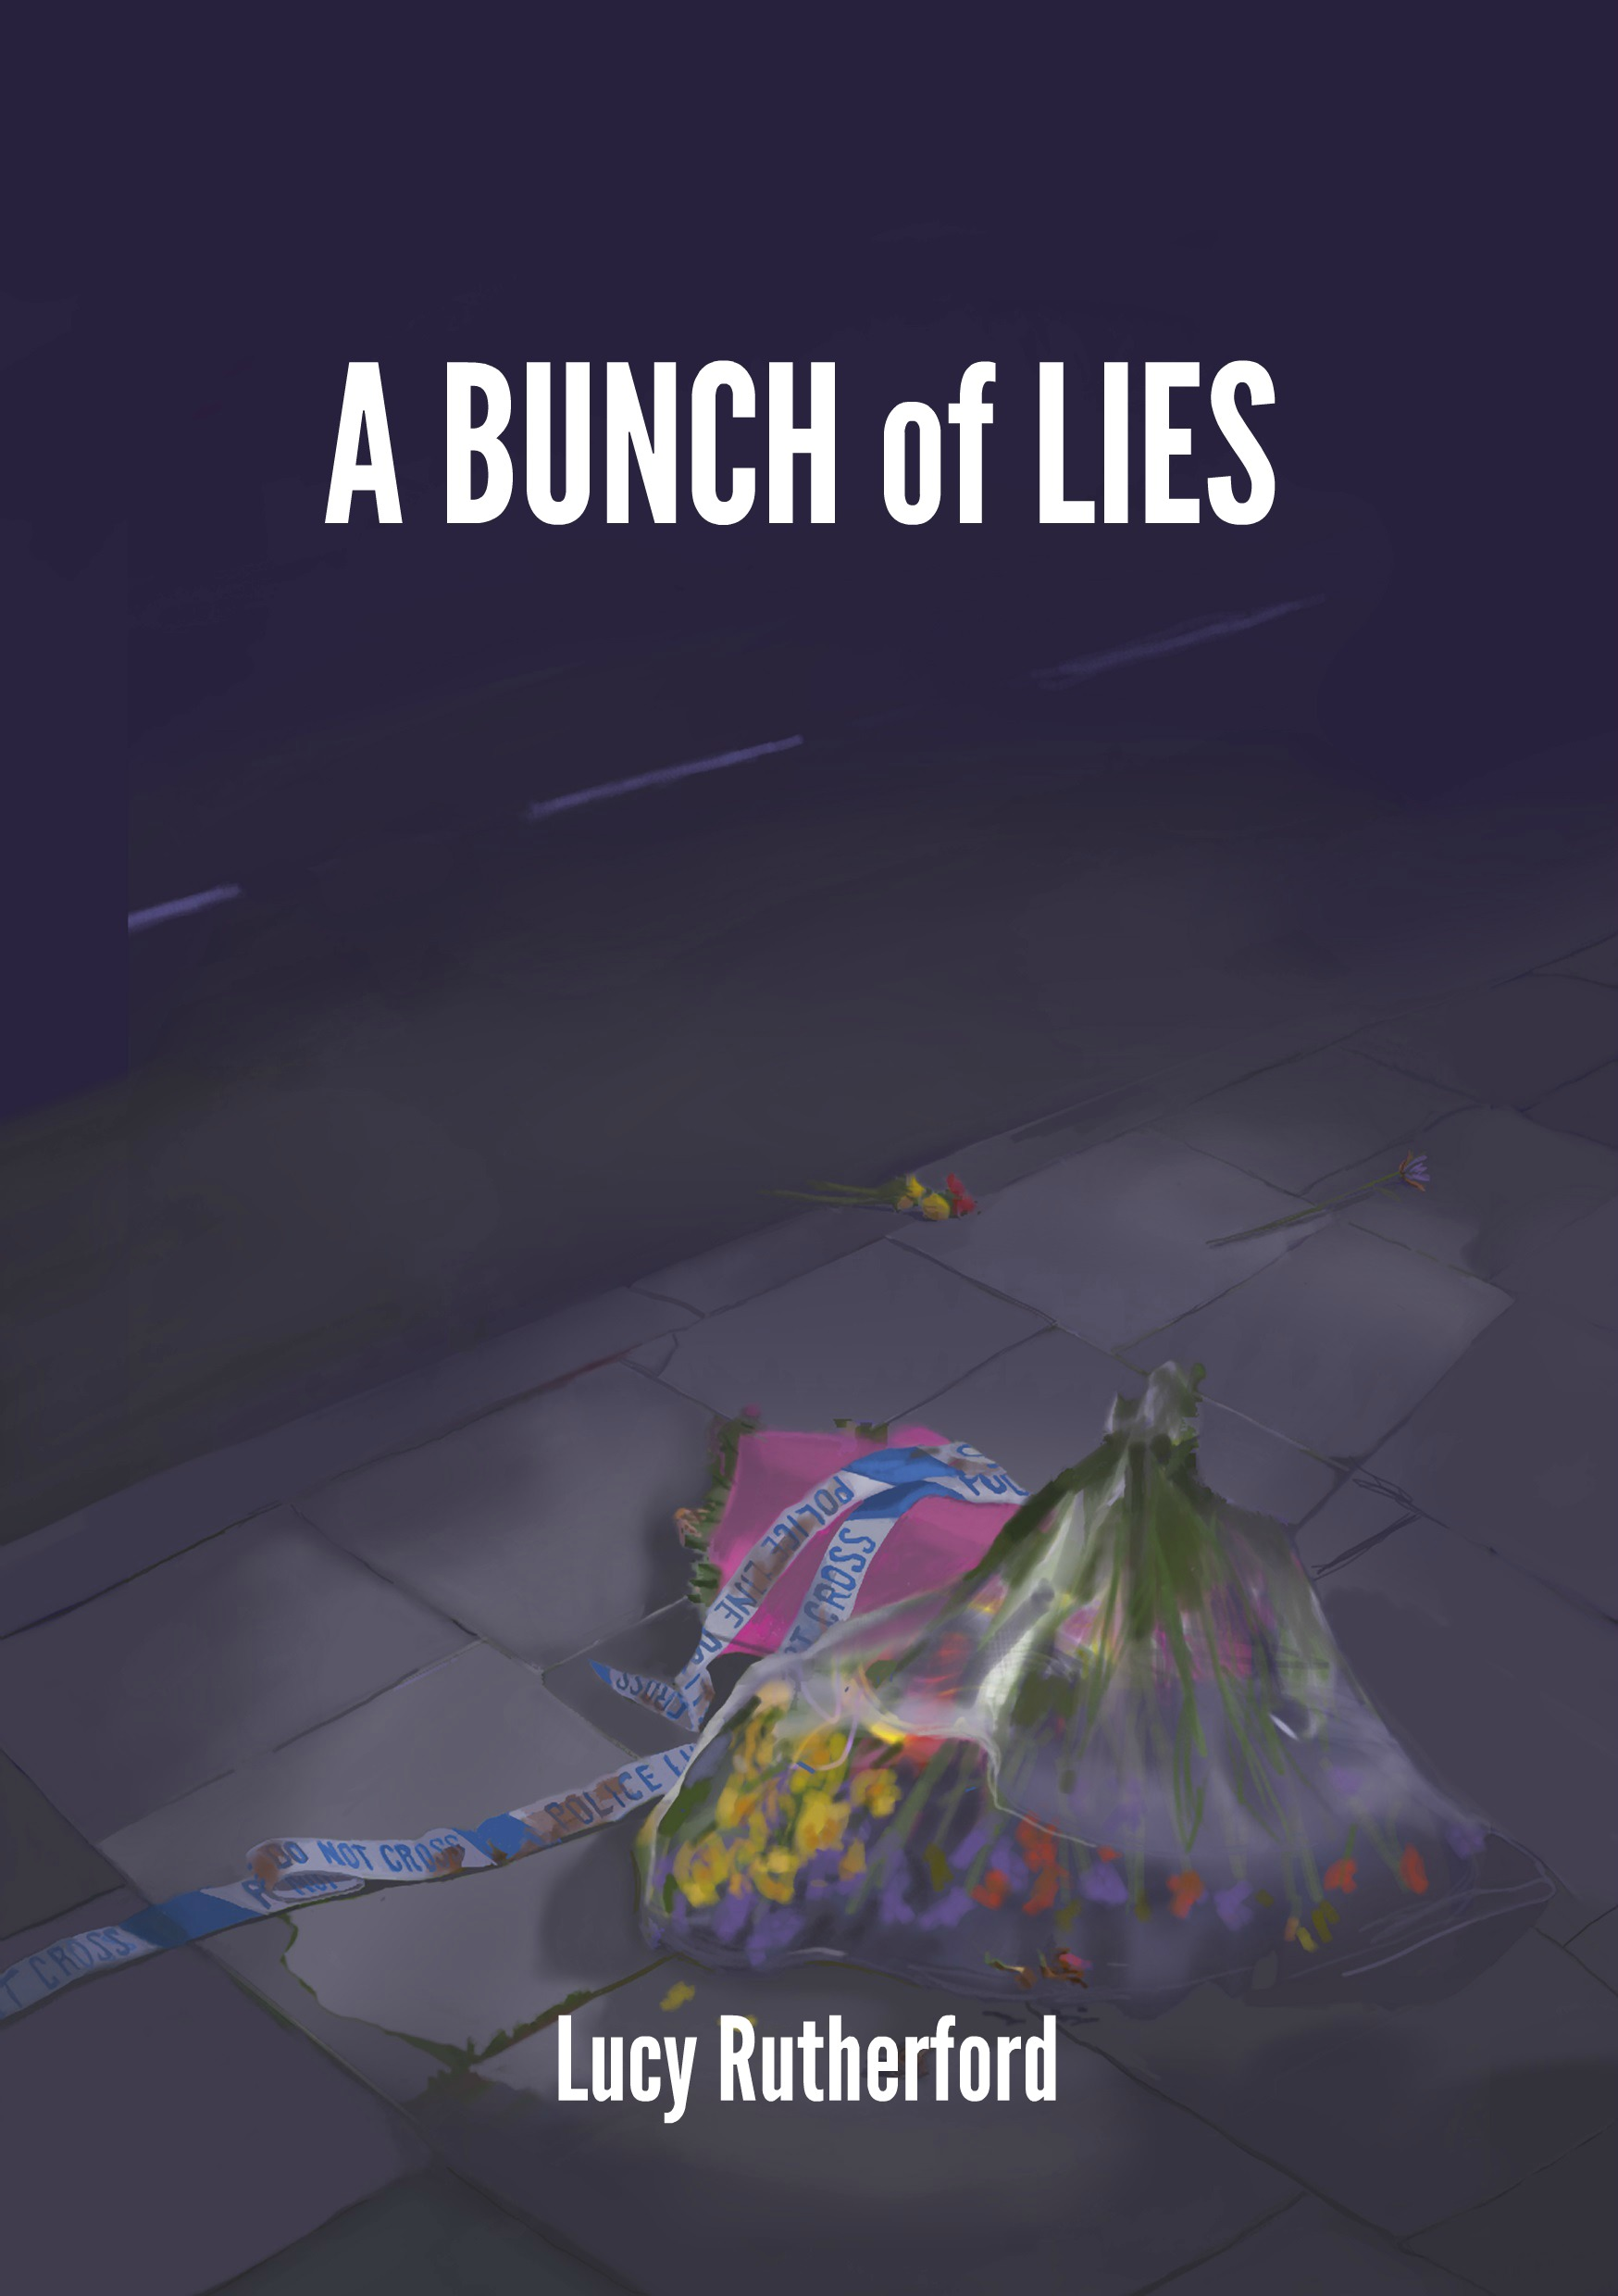 Jpg - A Bunch of Lies - extended Front Bookcover -